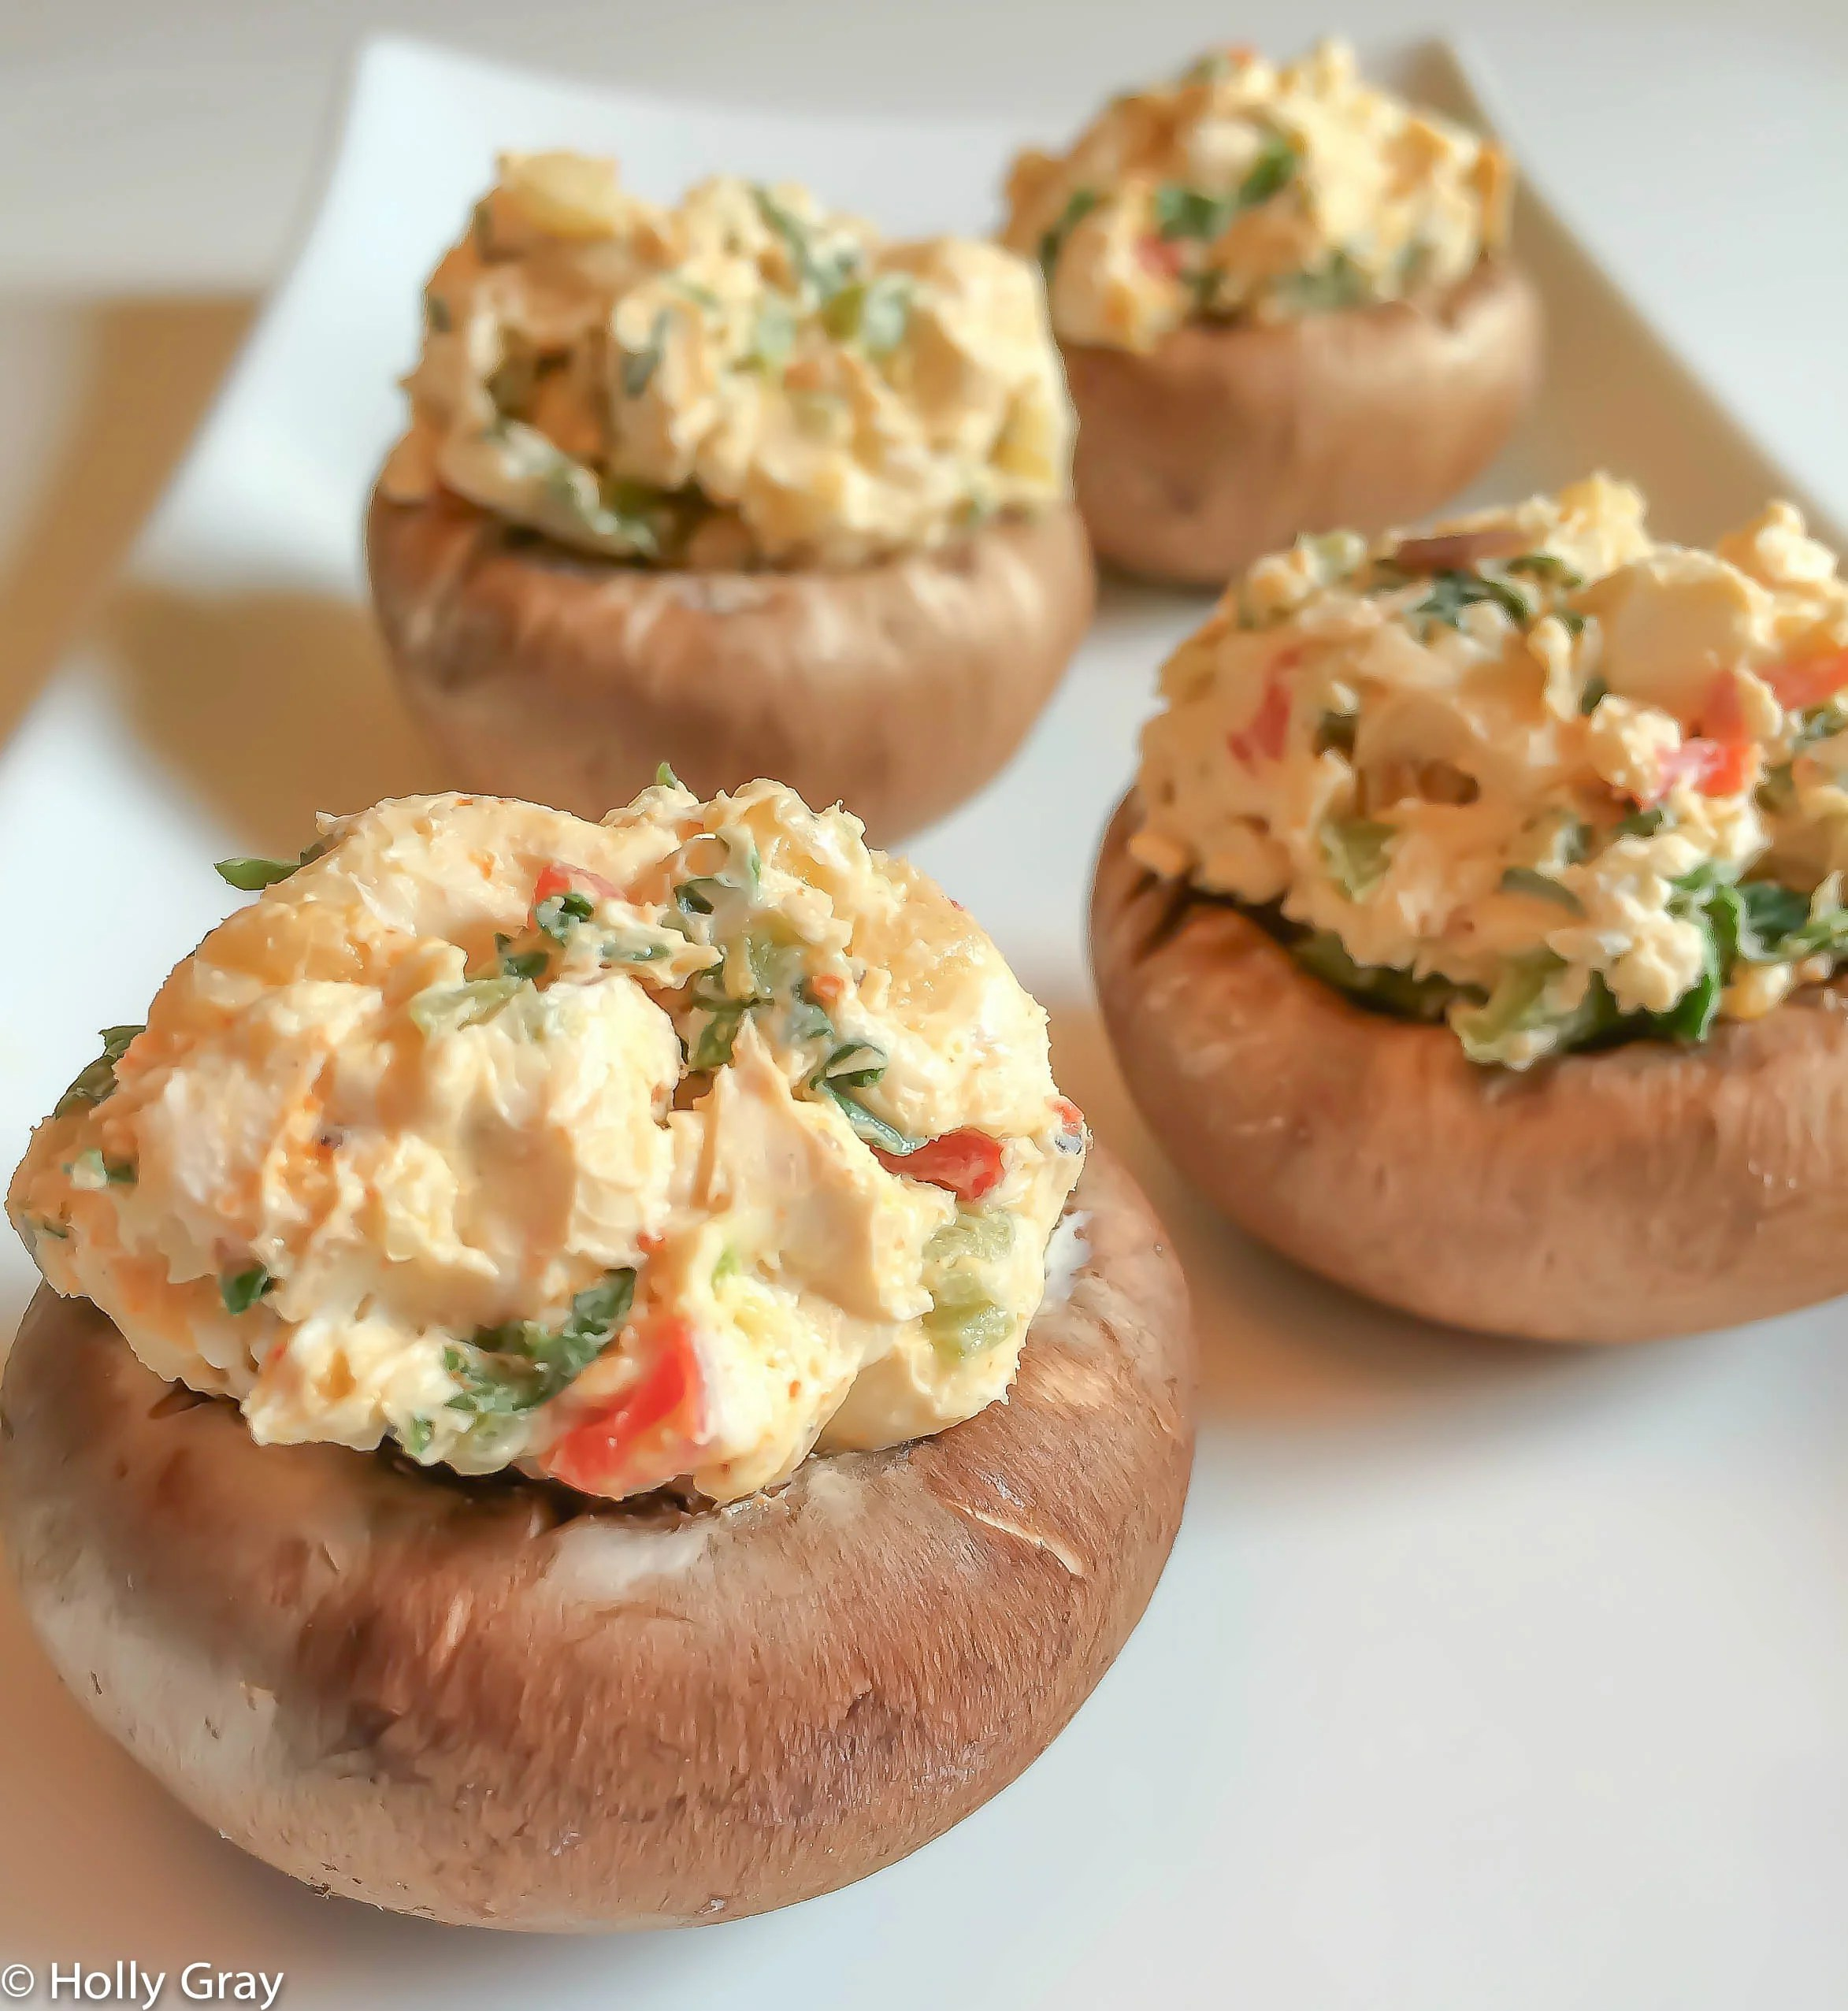 Cajun Spiced Stuffed Mushrooms